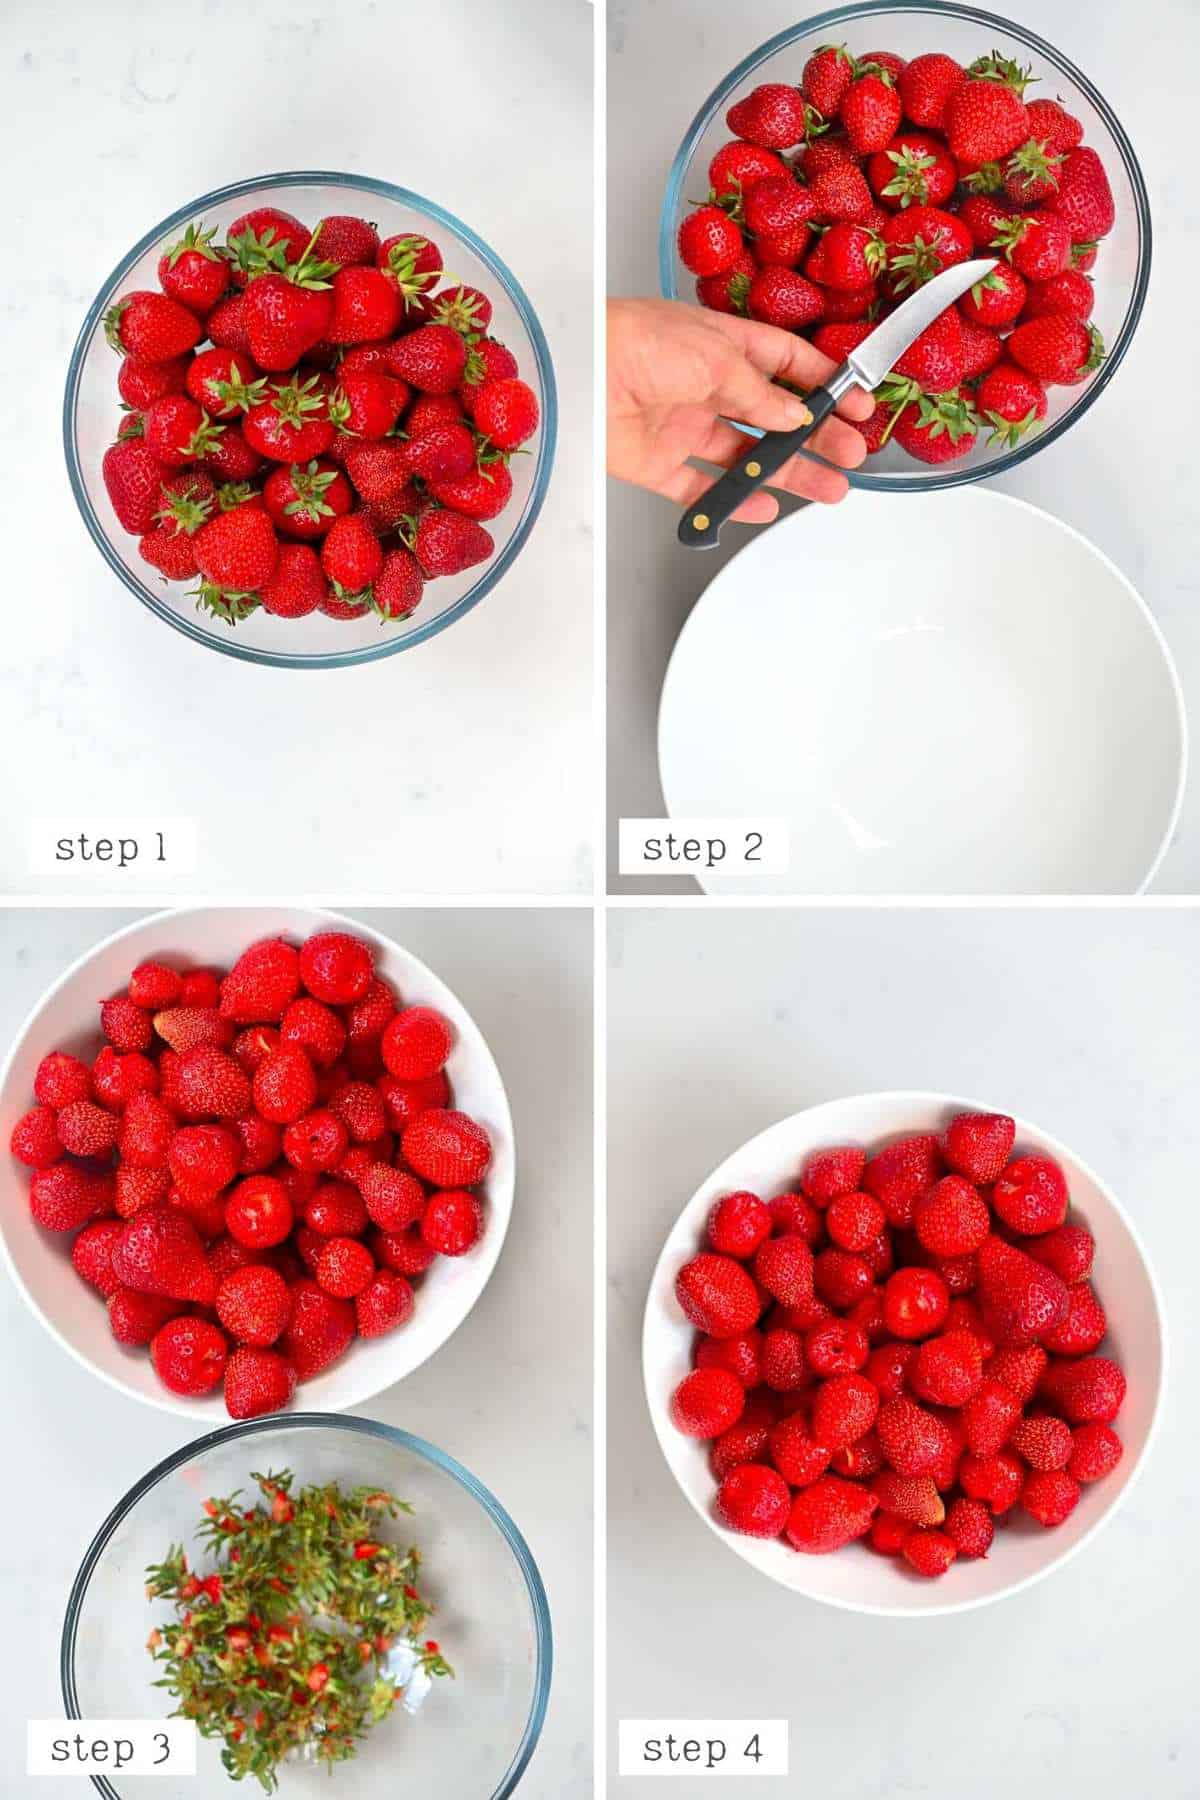 How to remove Strawberry Stems